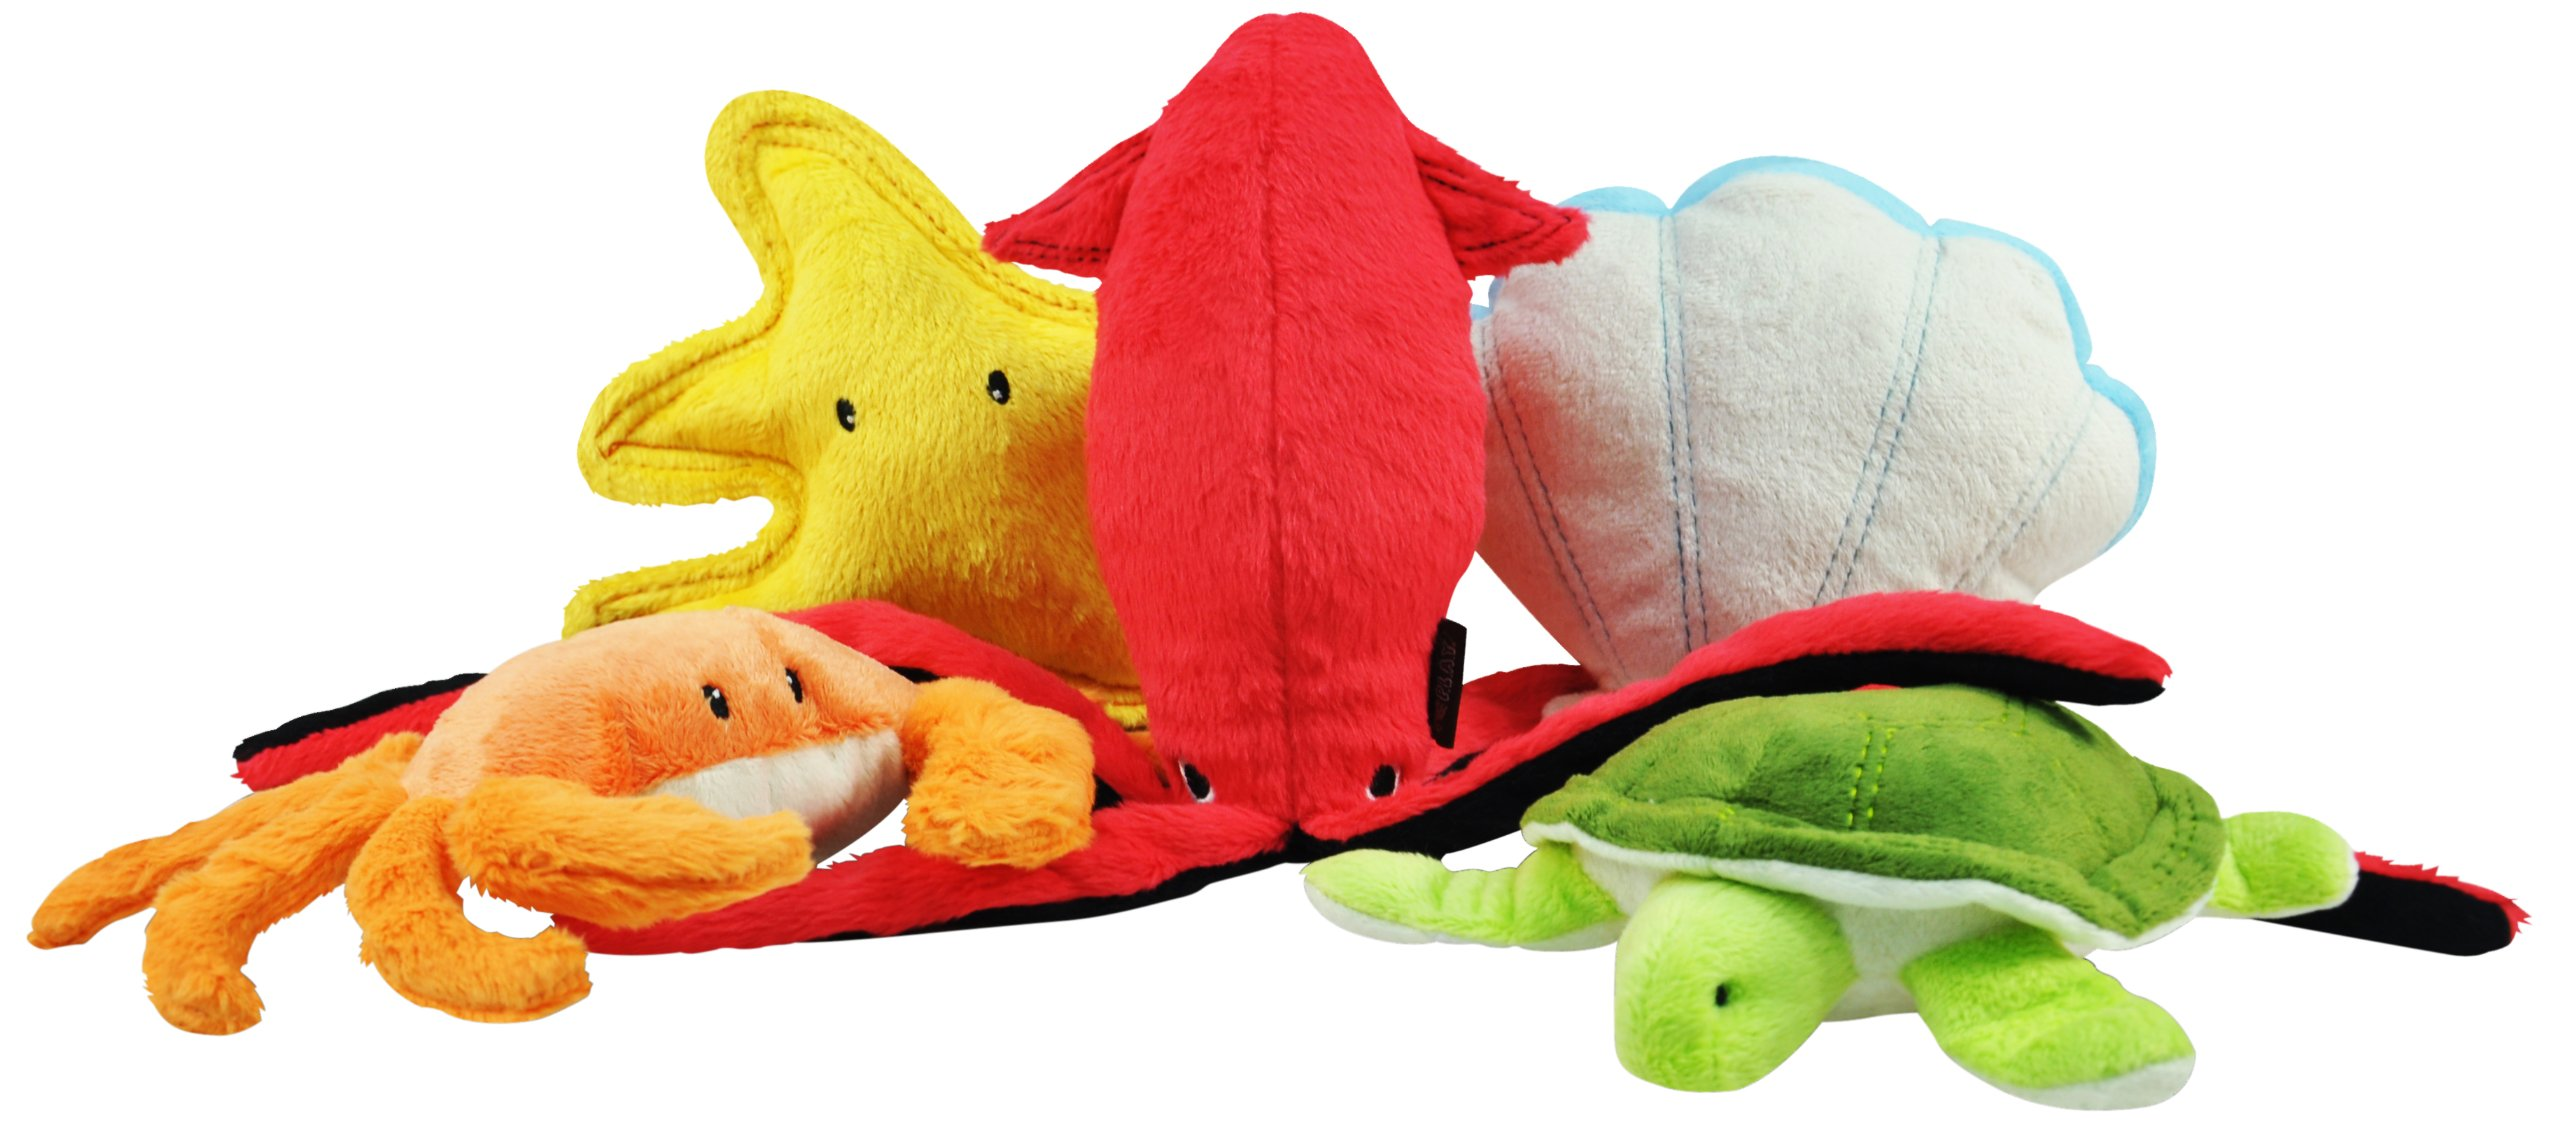 P.L.A.Y. - 5-Piece Under The Sea Toy Set